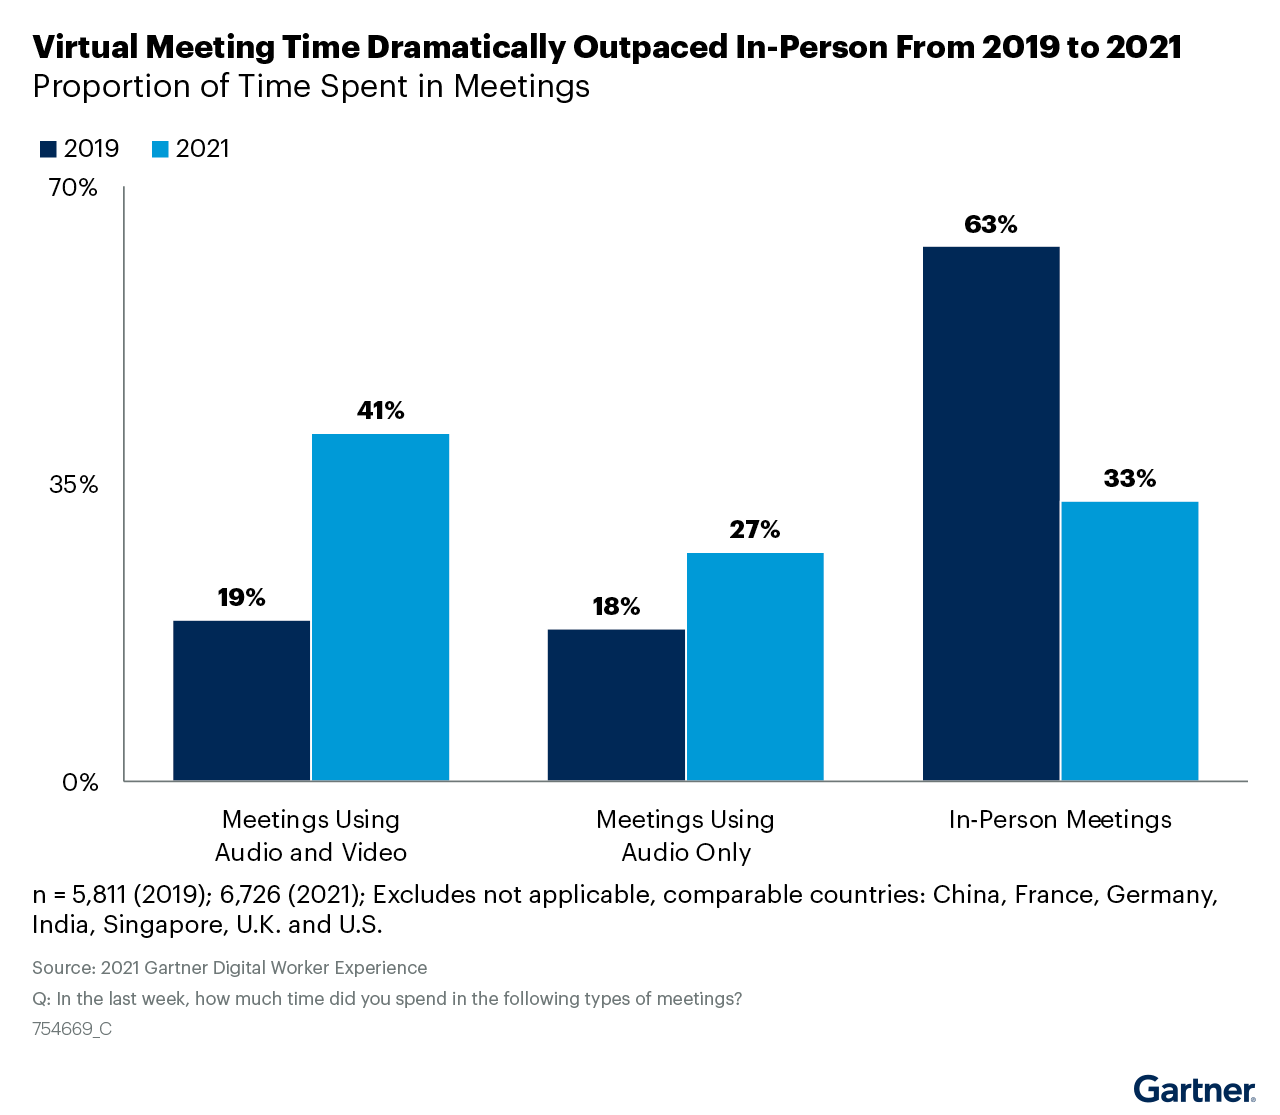 Figure 2. Virtual Meeting Time Dramatically Outpaced In-Person From 2019 to 2021